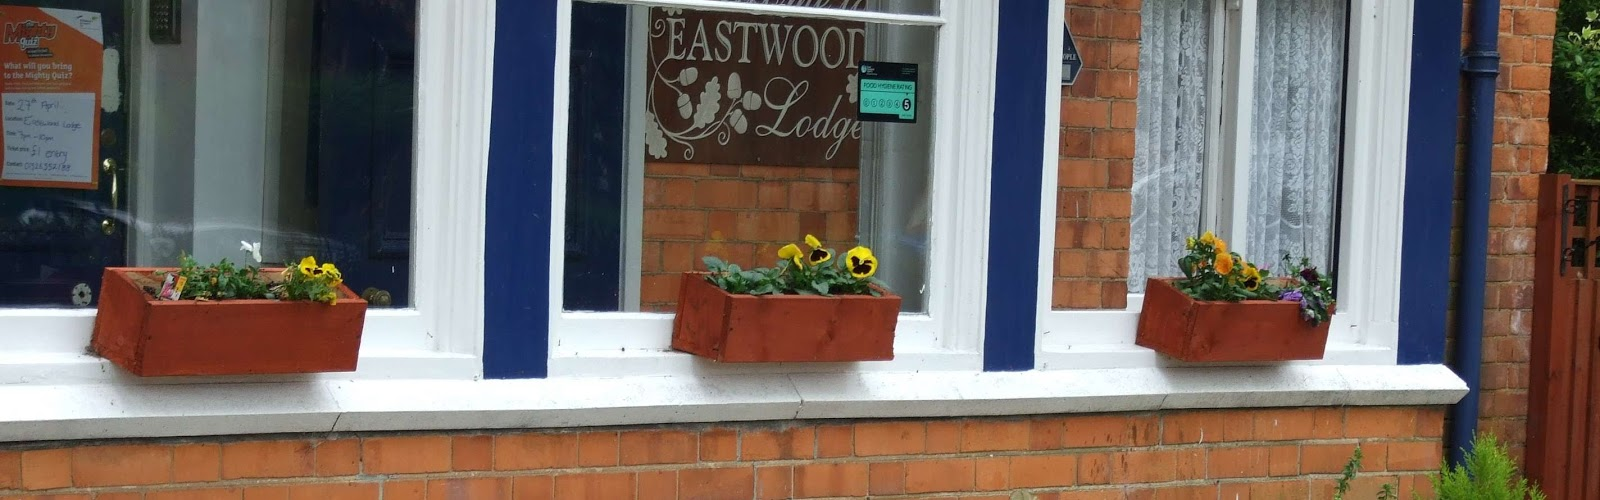 Care Home Careers At Eastwood Lodge